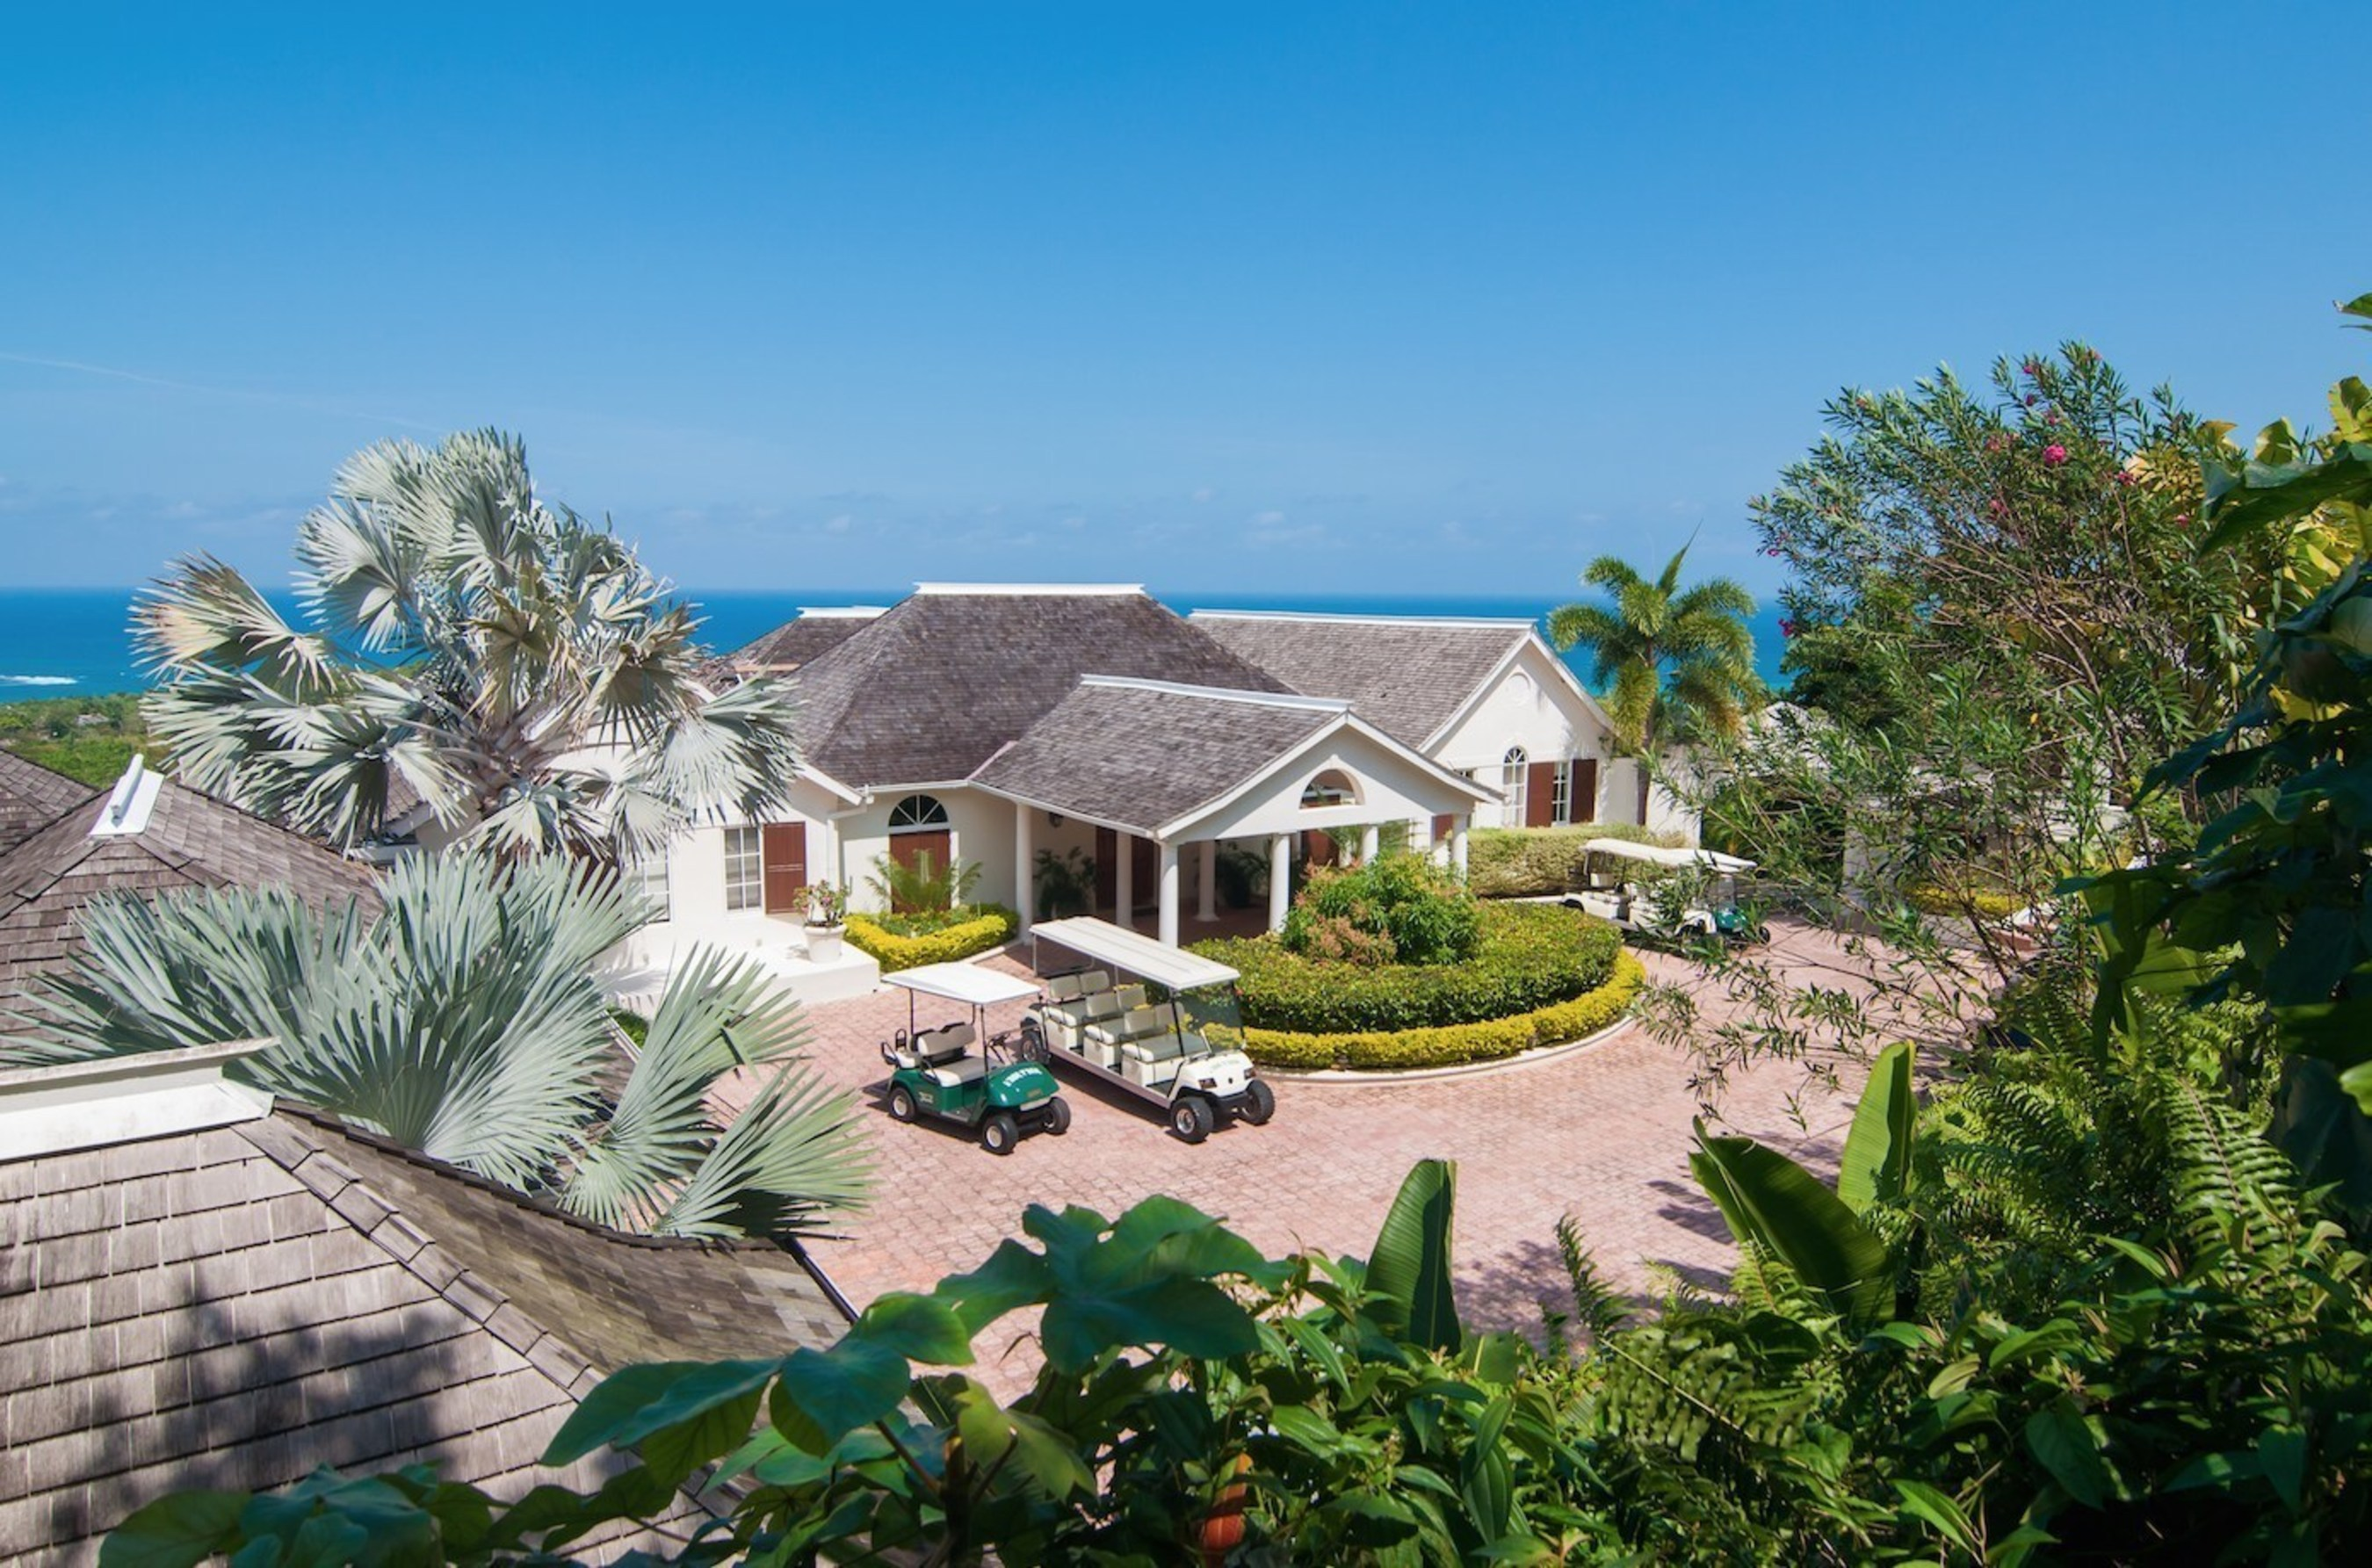 Welcome To L'Dor, V'Dor - Concierge Auctions' Newest Caribbean Opportunity Located Within Jamaica's